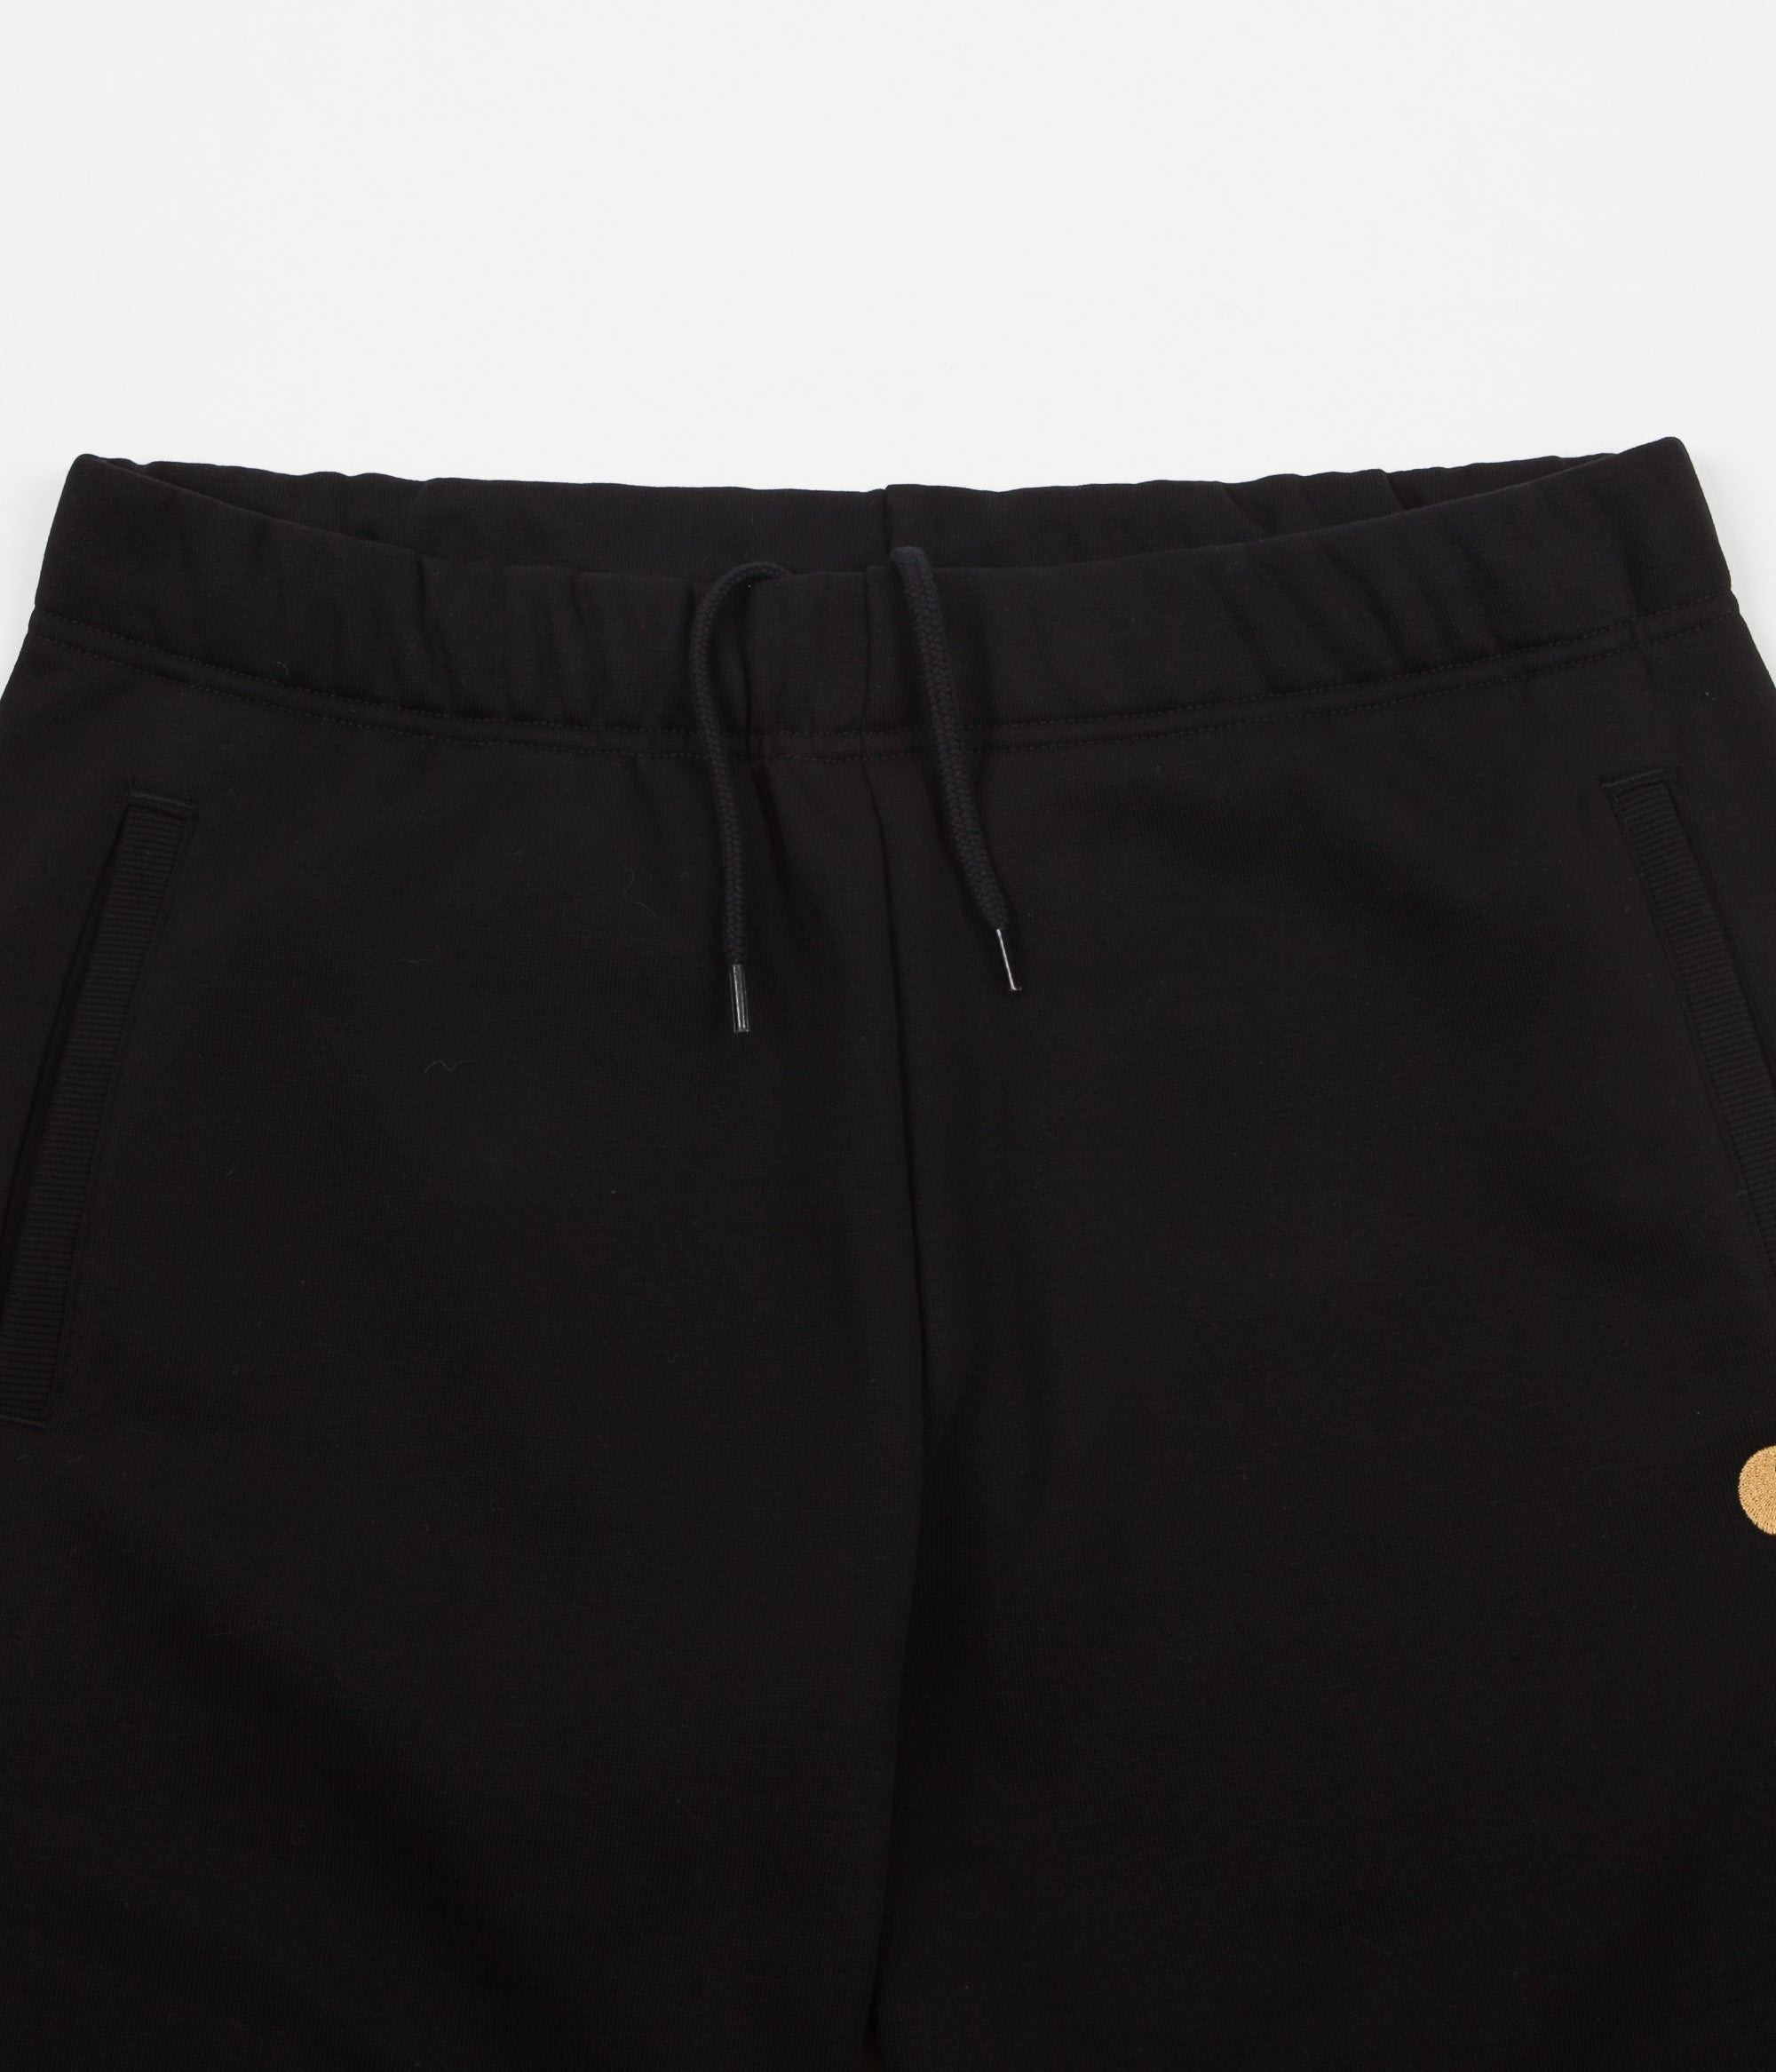 Carhartt Chase Sweat Shorts - Black / Gold